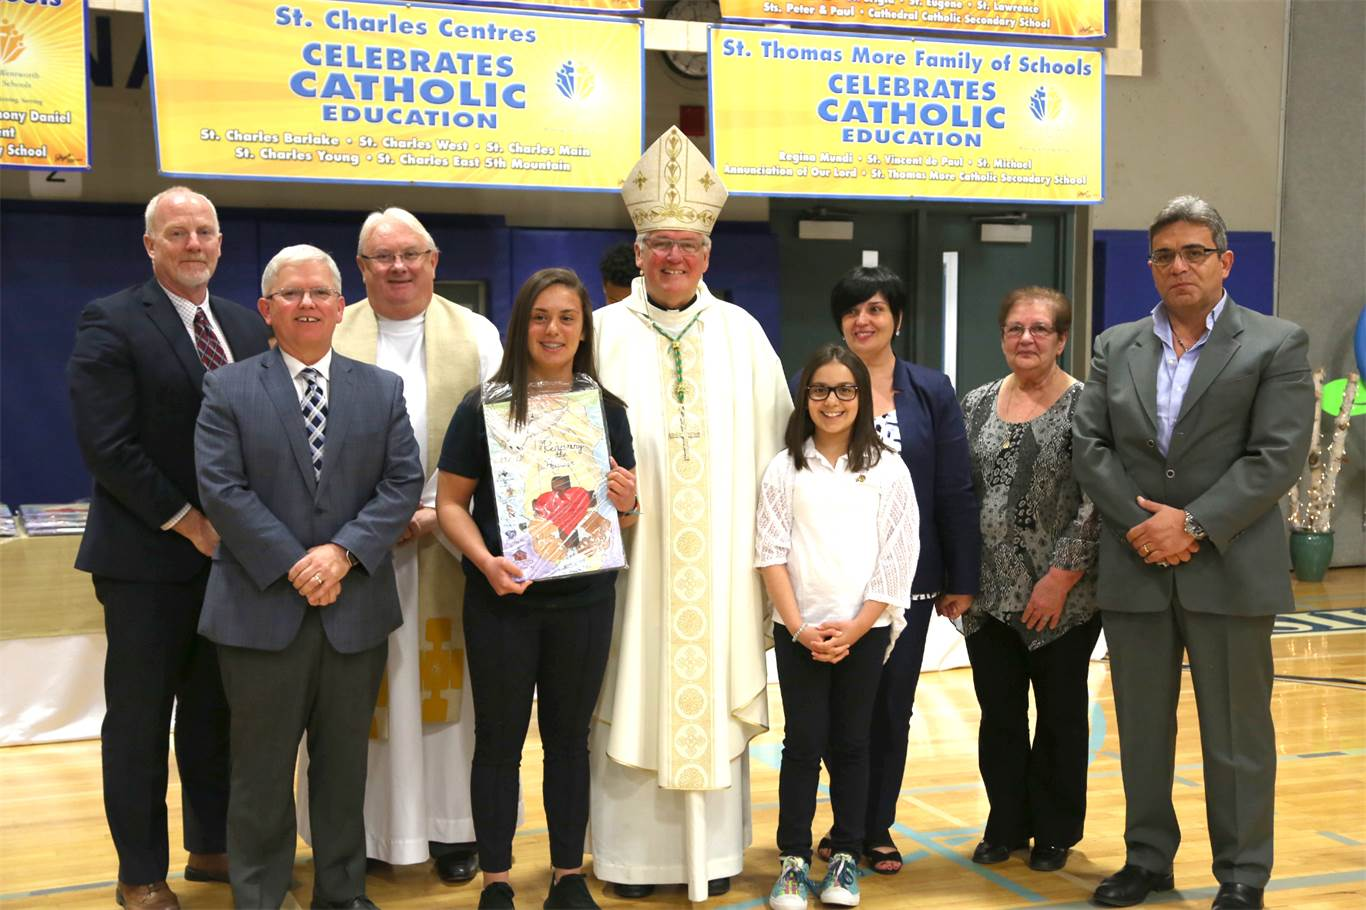 The artwork for this year's Catholic Education Week poster was created by Angela Guglielmo, a Grade 8 student at St. Mark Catholic Elementary School. Pictured, left to right, are: Director of Education David Hansen; Chairperson Patrick Daly; Vicar of Education for the Diocese of Hamilton, Rev. Fr. Con O'Mahony; Angela; The Most Rev. Douglas Crosby, OMI, Bishop of Hamilton; and Angela's family members, sister Antonia, mom Caroline, Nonna Pina, and father Mike. Photo by Jenna Madalena.